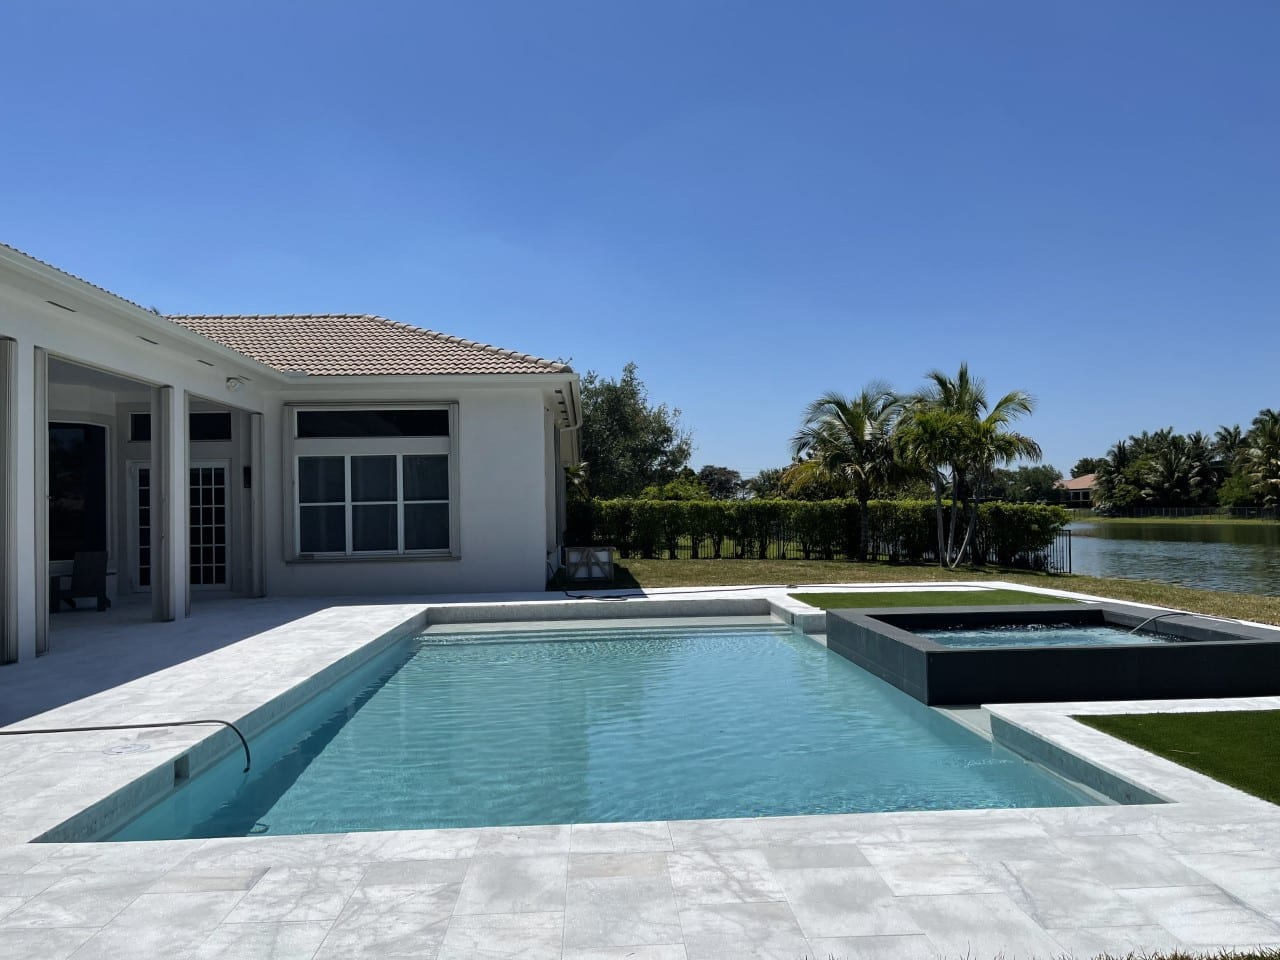 Classy rectangular pool on a white tiled floor and a white house on the left side